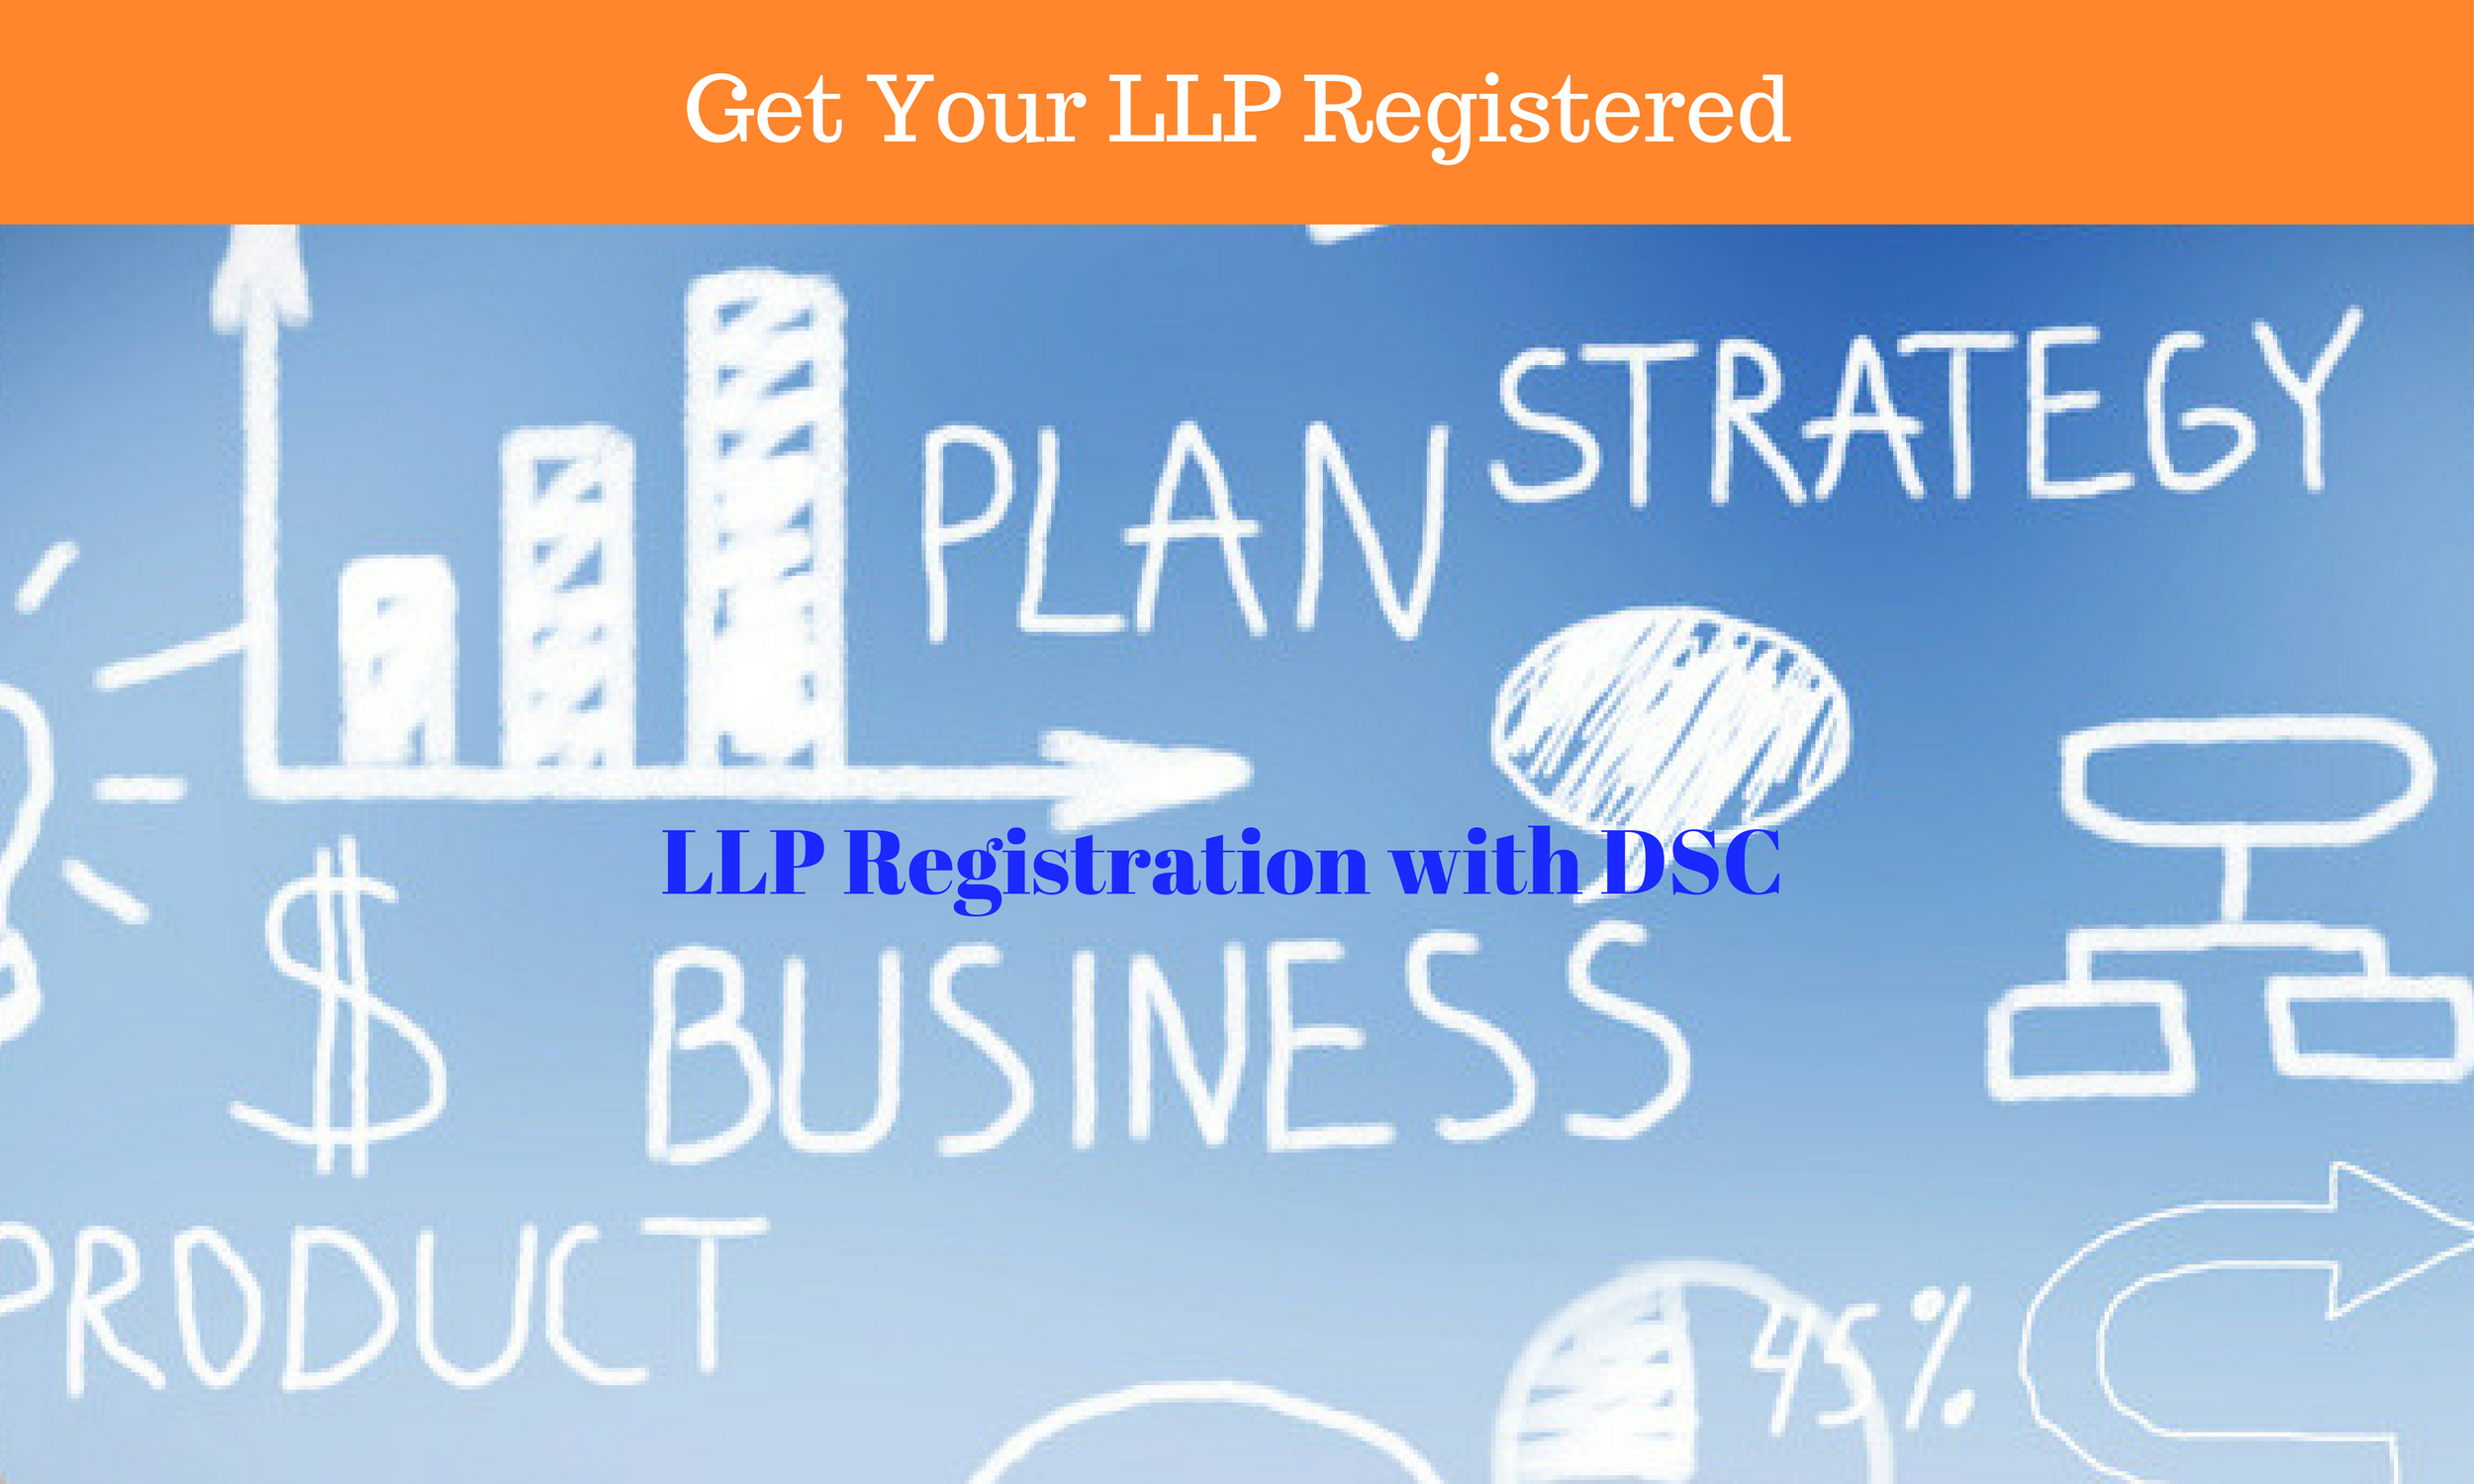 Get Your LLP Registered